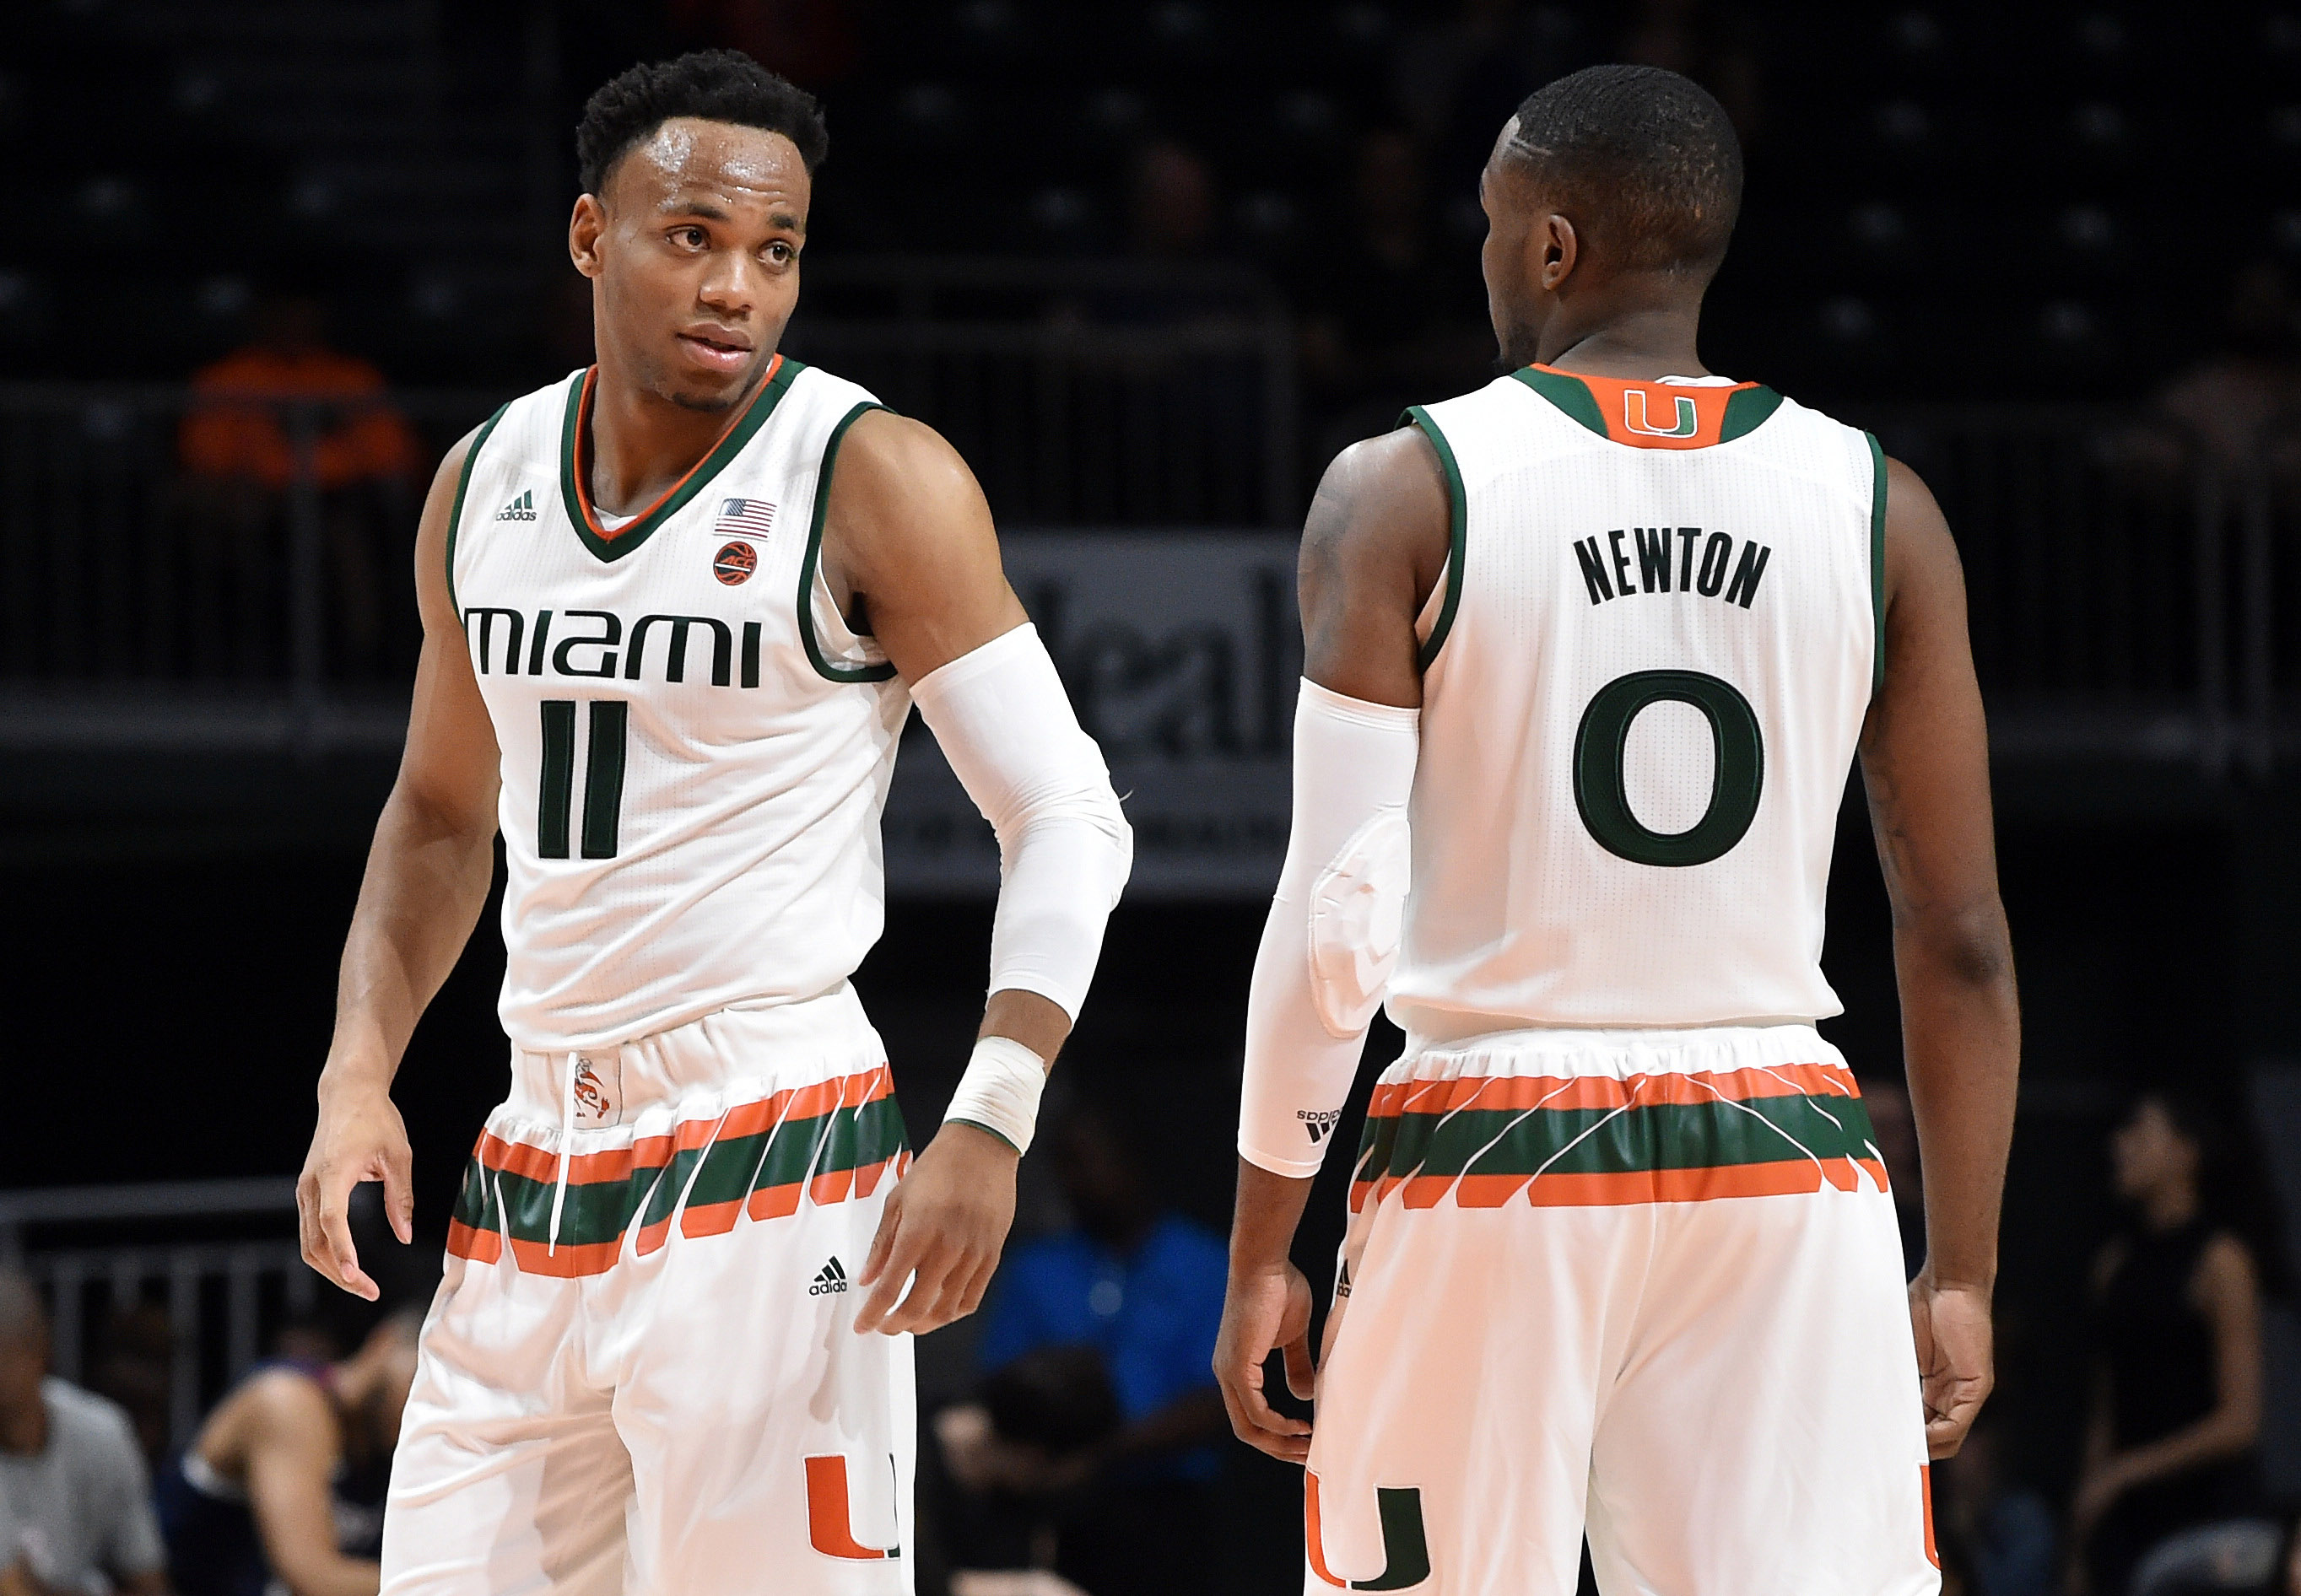 new concept 28f13 21108 Miami Hurricanes Basketball Consensus Top 25 For 2017-18 ...